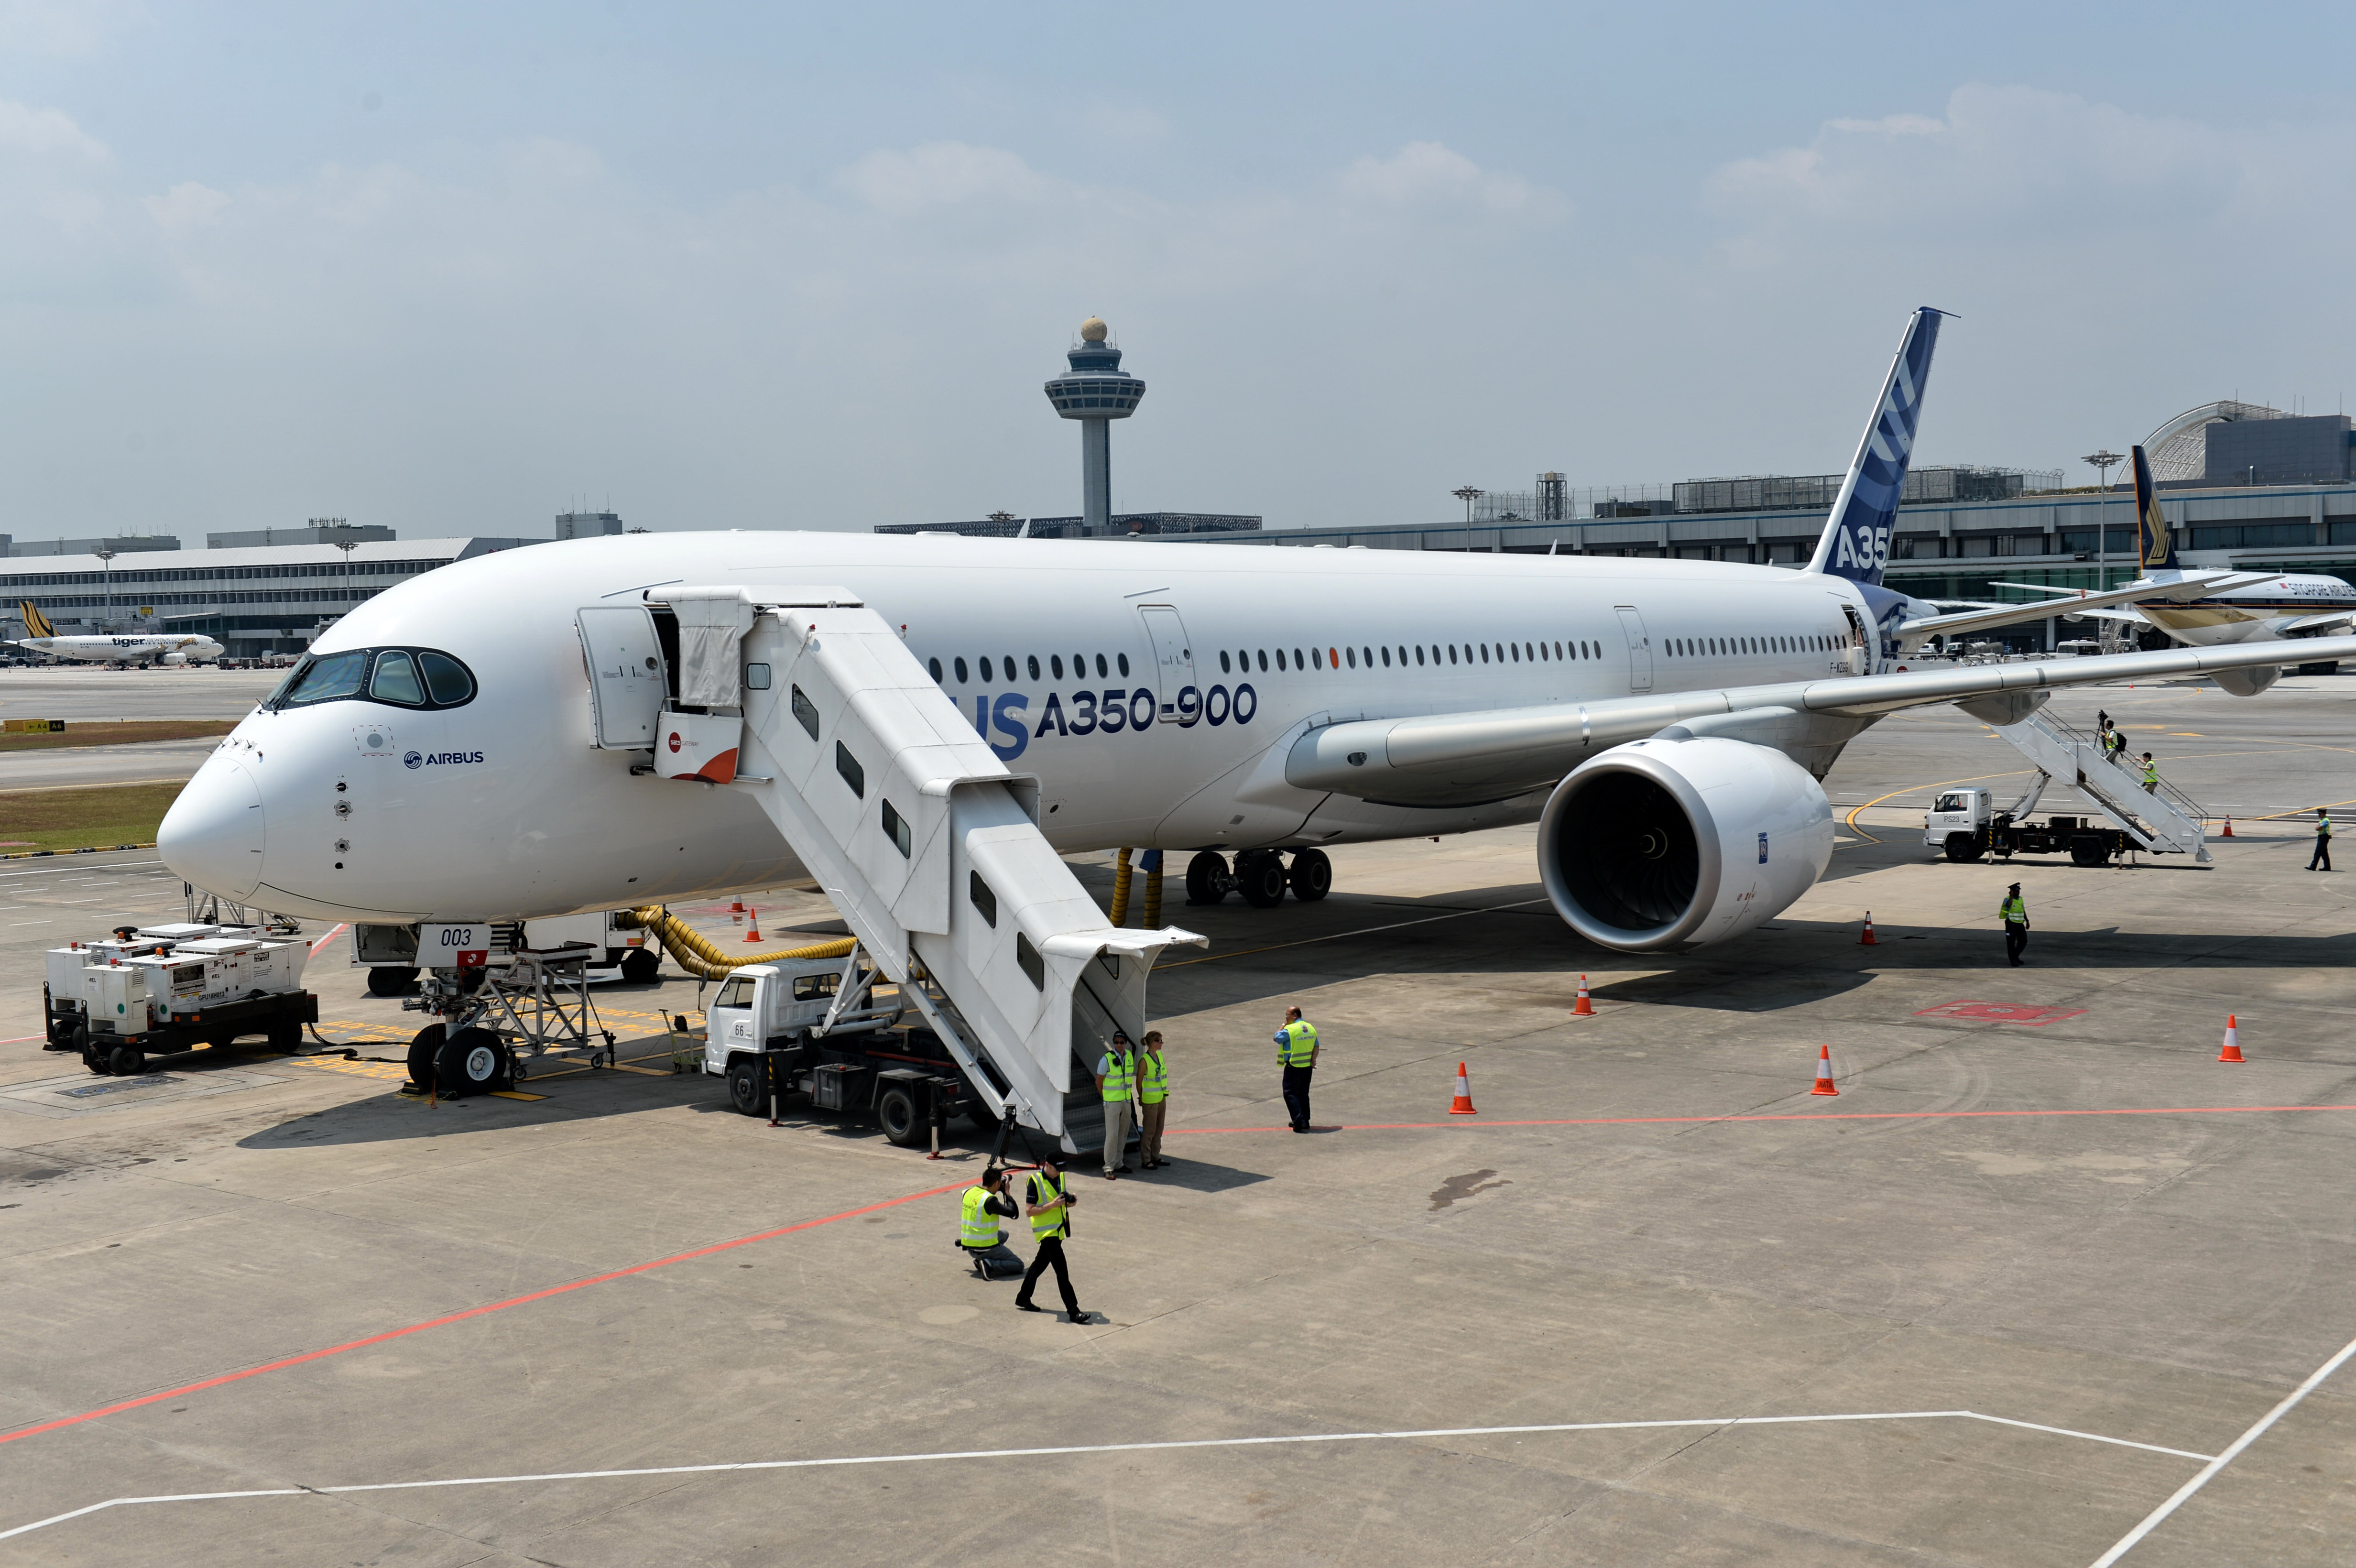 An Airbus A350-900 sits on the tarmac during a media preview at Changi Interational Airport ahead of the Singapore Airshow on Feb. 10, 2014.